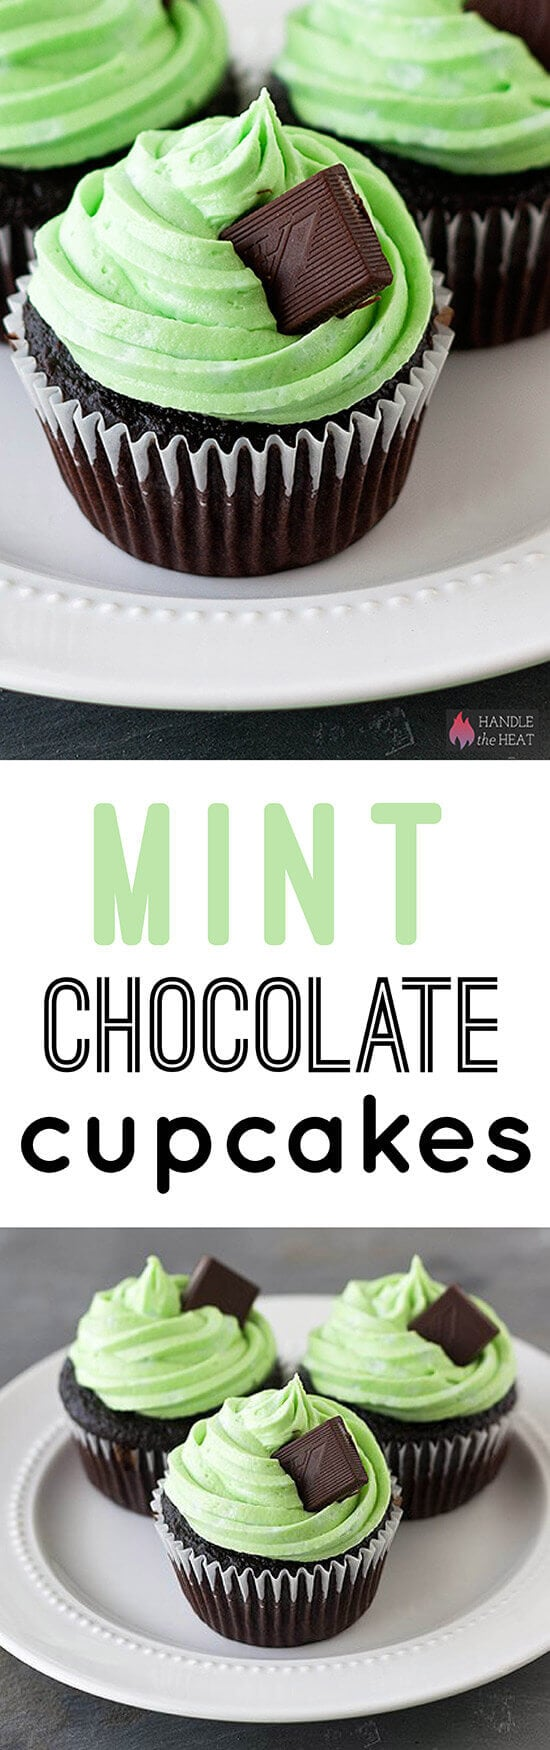 ... sweet flavors + absolutely adorable. Top them off with an Andes mint